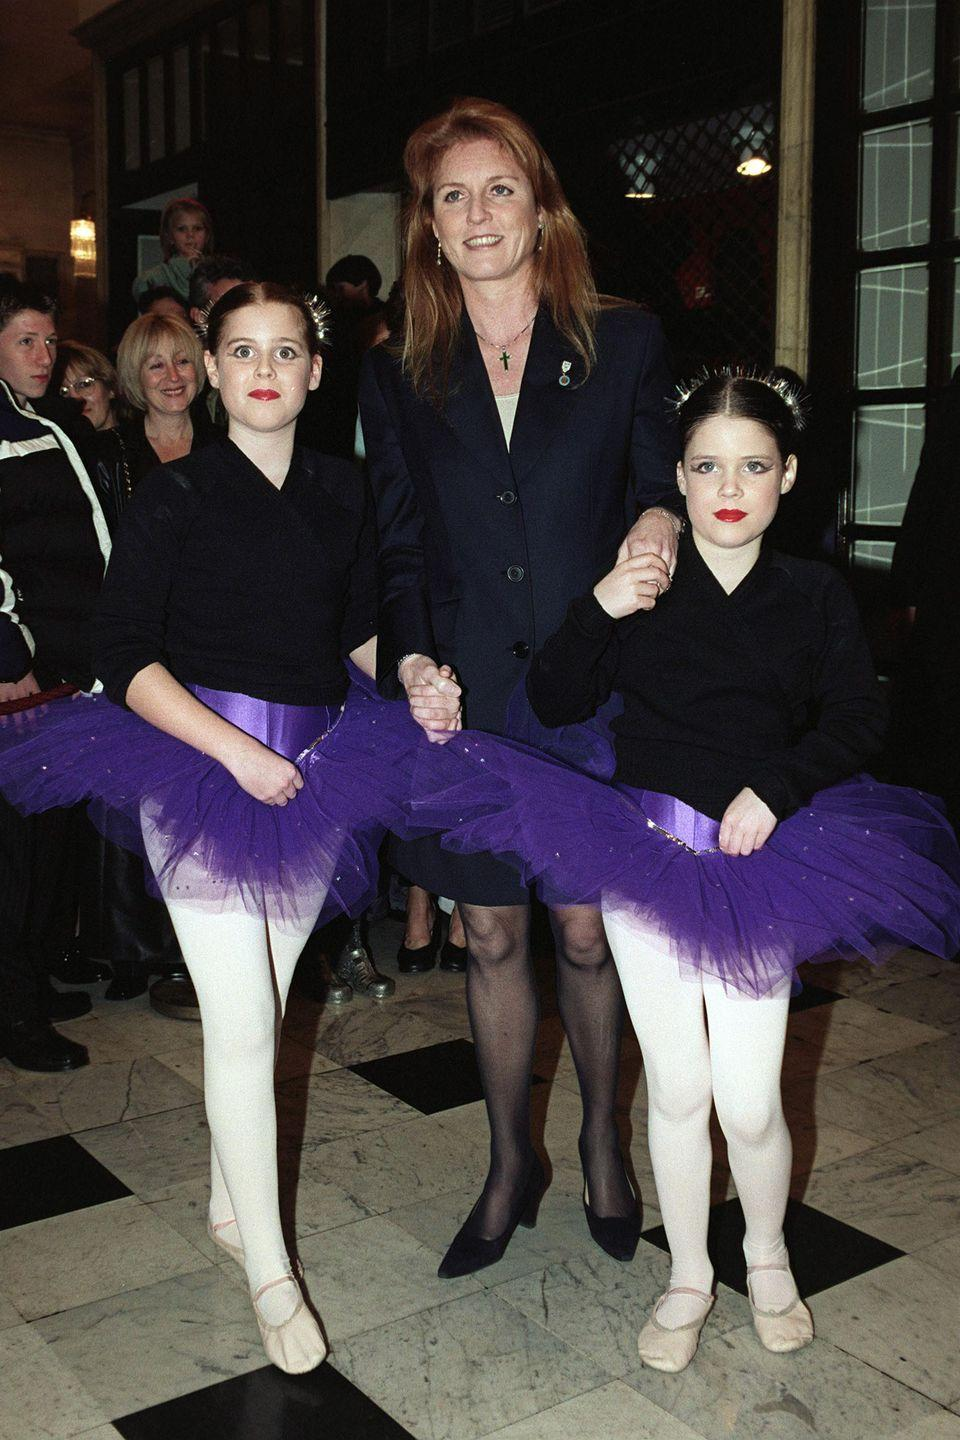 "<p>Princess Beatrice and Princess Eugenie dressed as ballerinas in purple tutus while arriving with their mother, Sarah Ferguson, for ""Santa's Starry Night"" show at the Drury Lane Theatre. </p>"